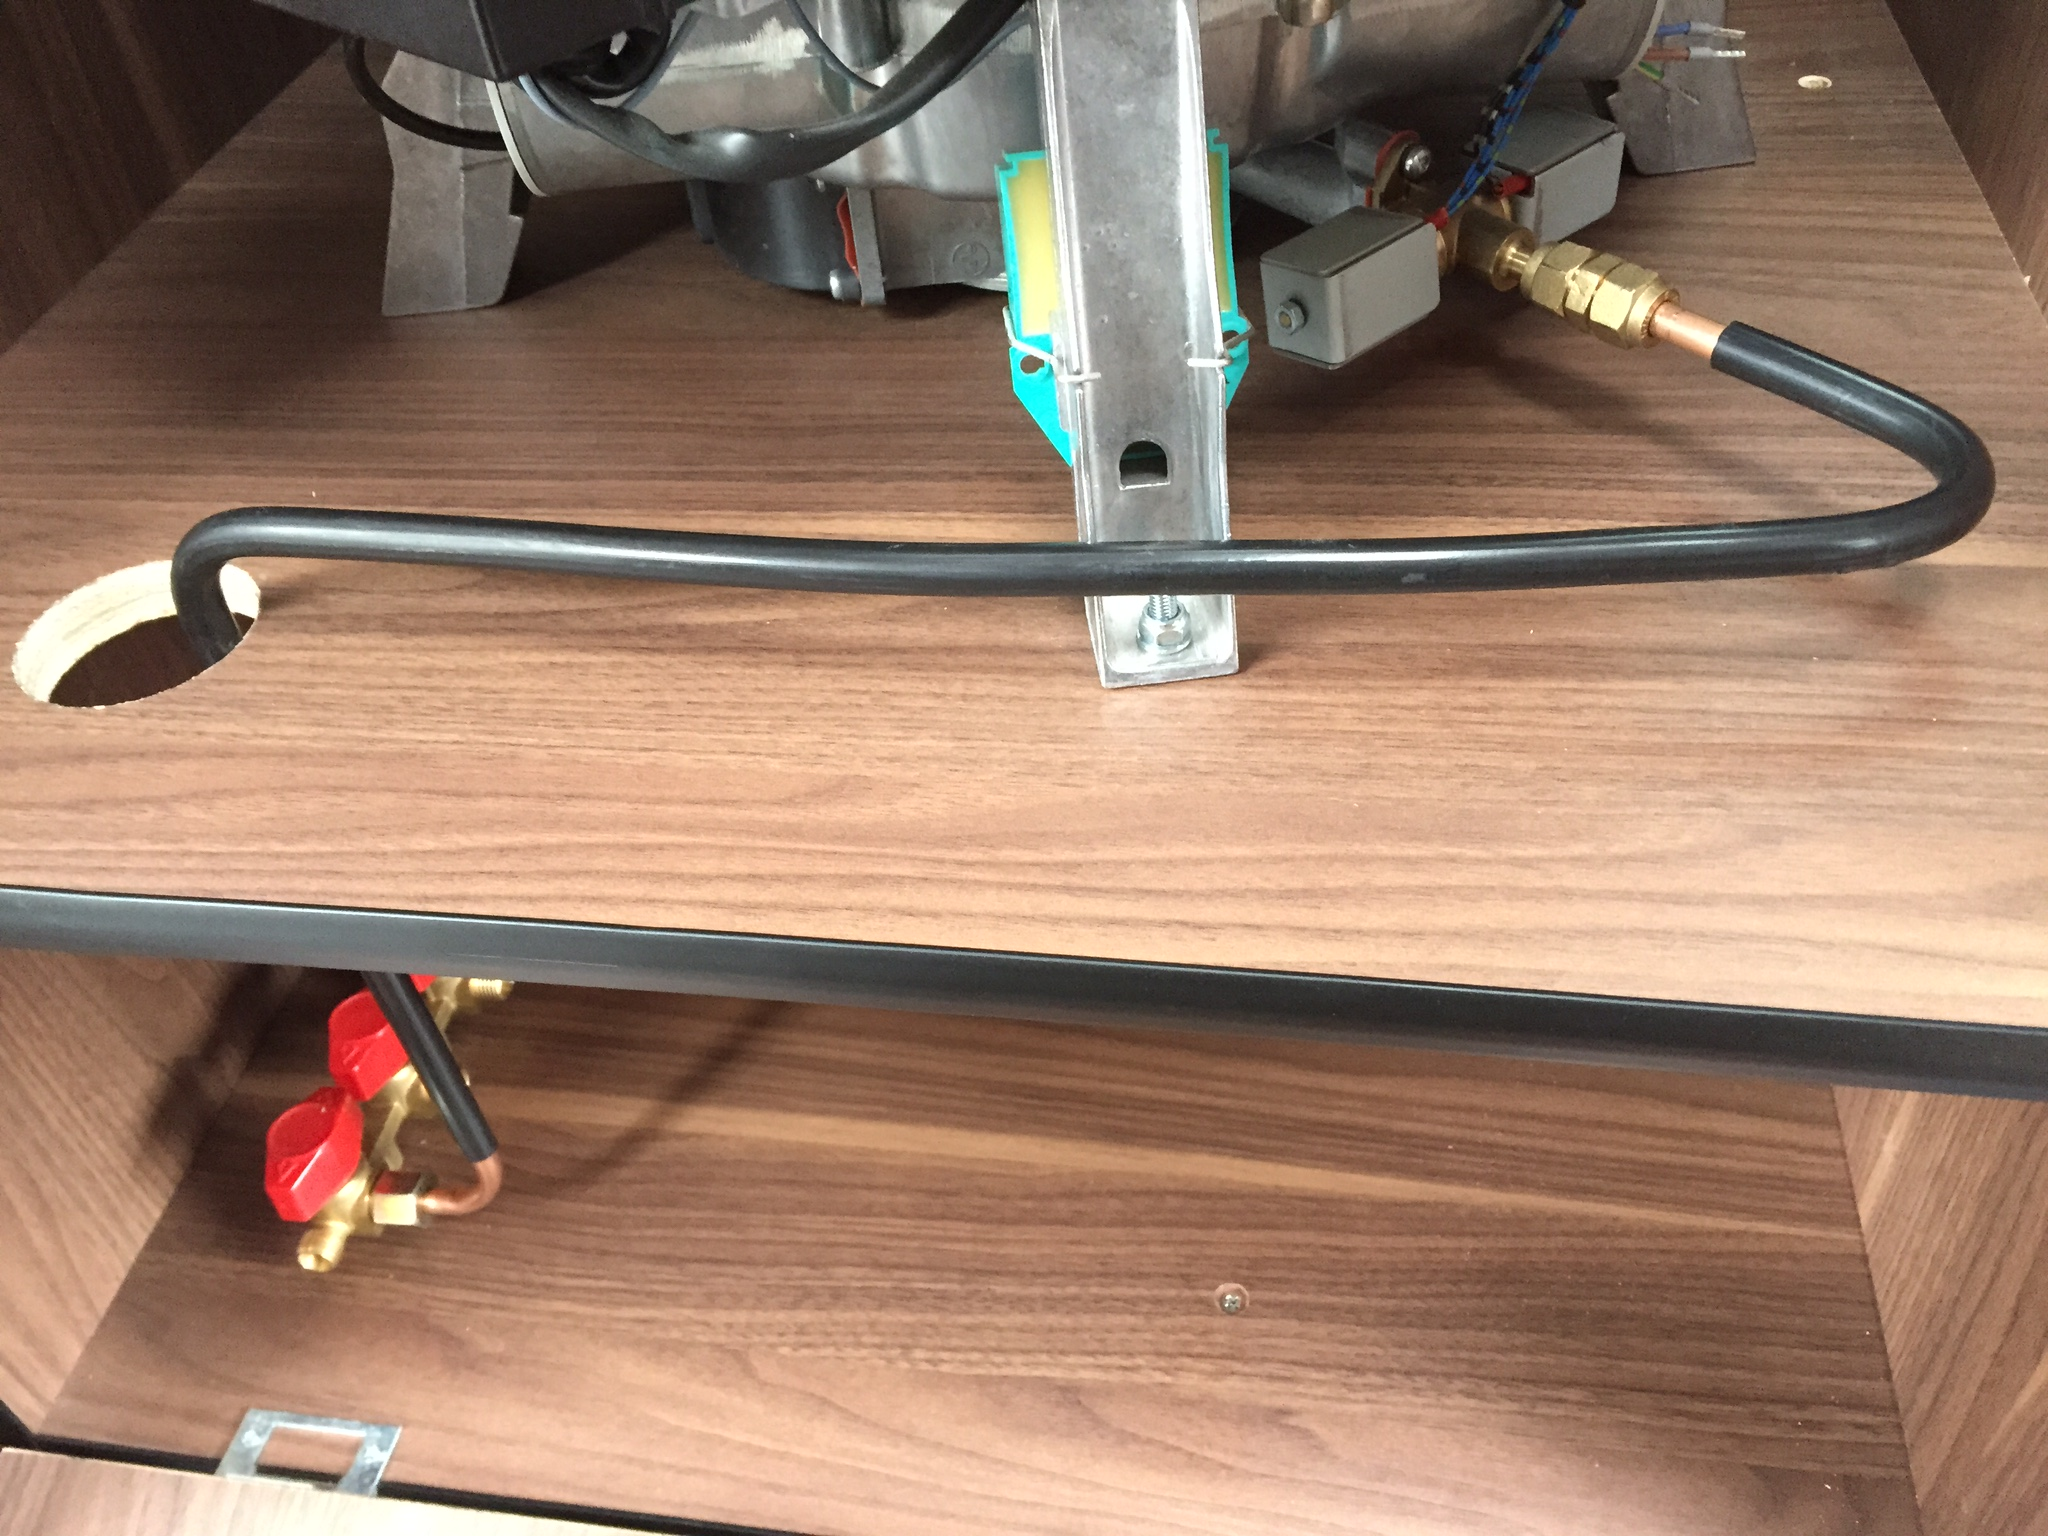 Boiler gas connection and manifold